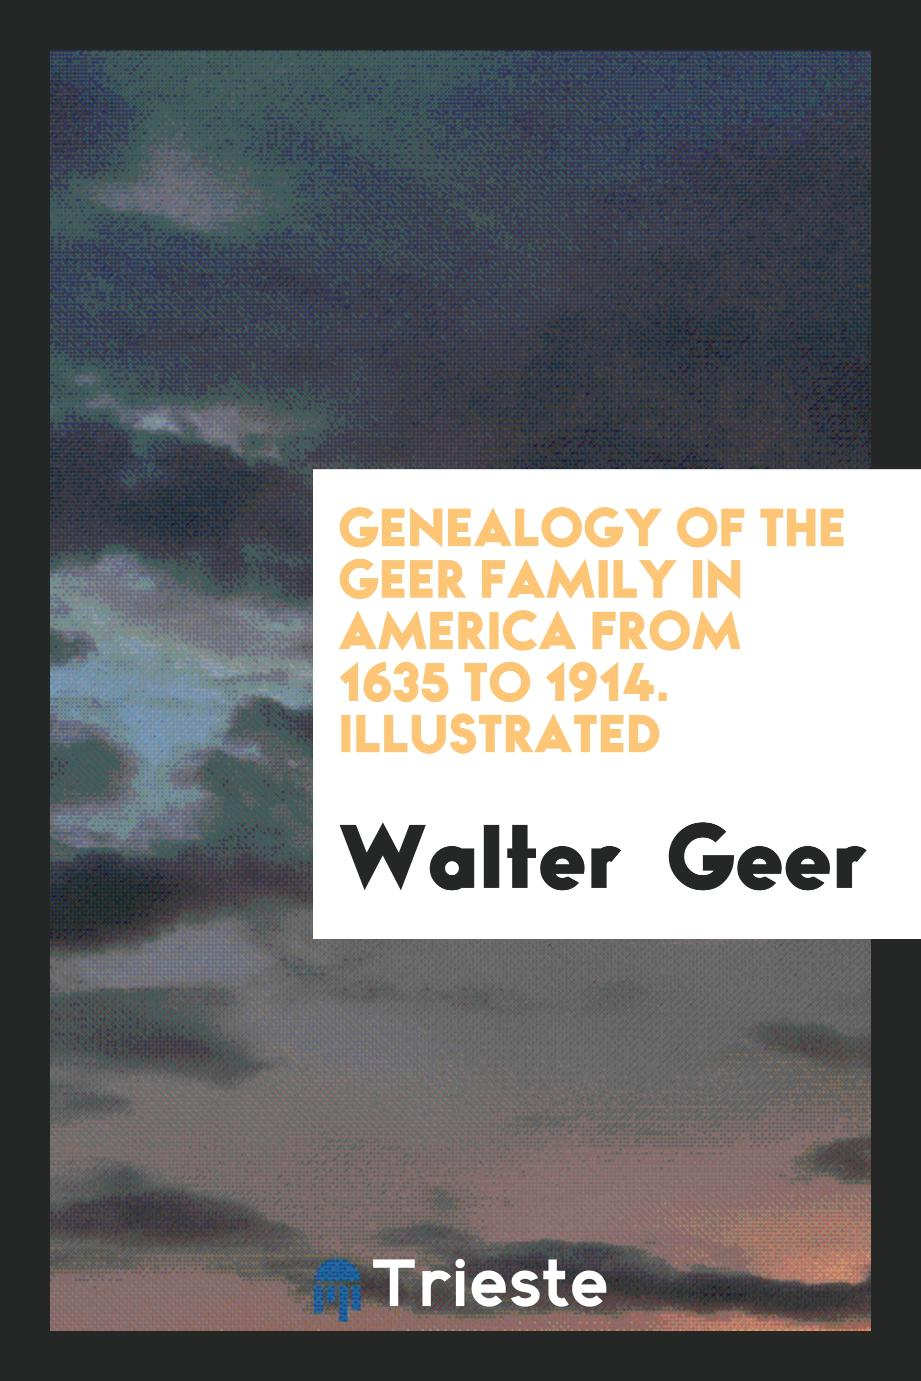 Genealogy of the Geer Family in America from 1635 to 1914. Illustrated